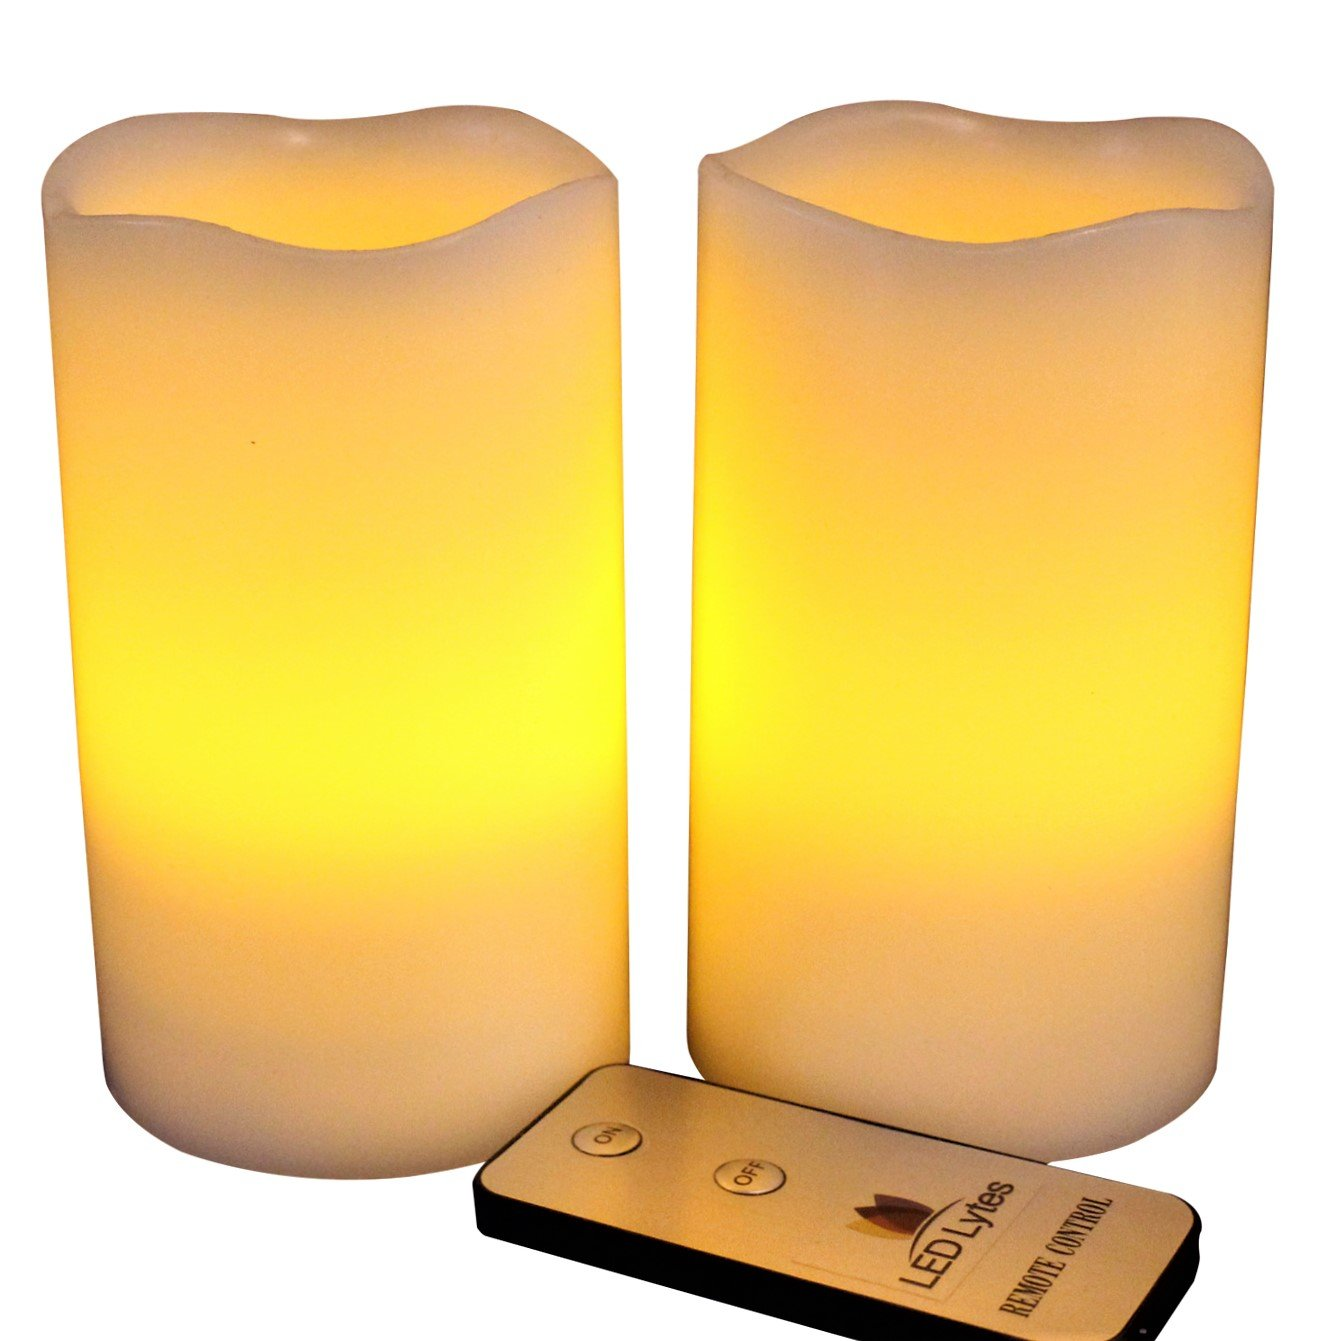 LED Lytes Flameless Candles Flickering - 2 Ivory Wax and Amber Yellow Flame Pillars Battery Operated with Remote for Parties, Weddings and Decorations